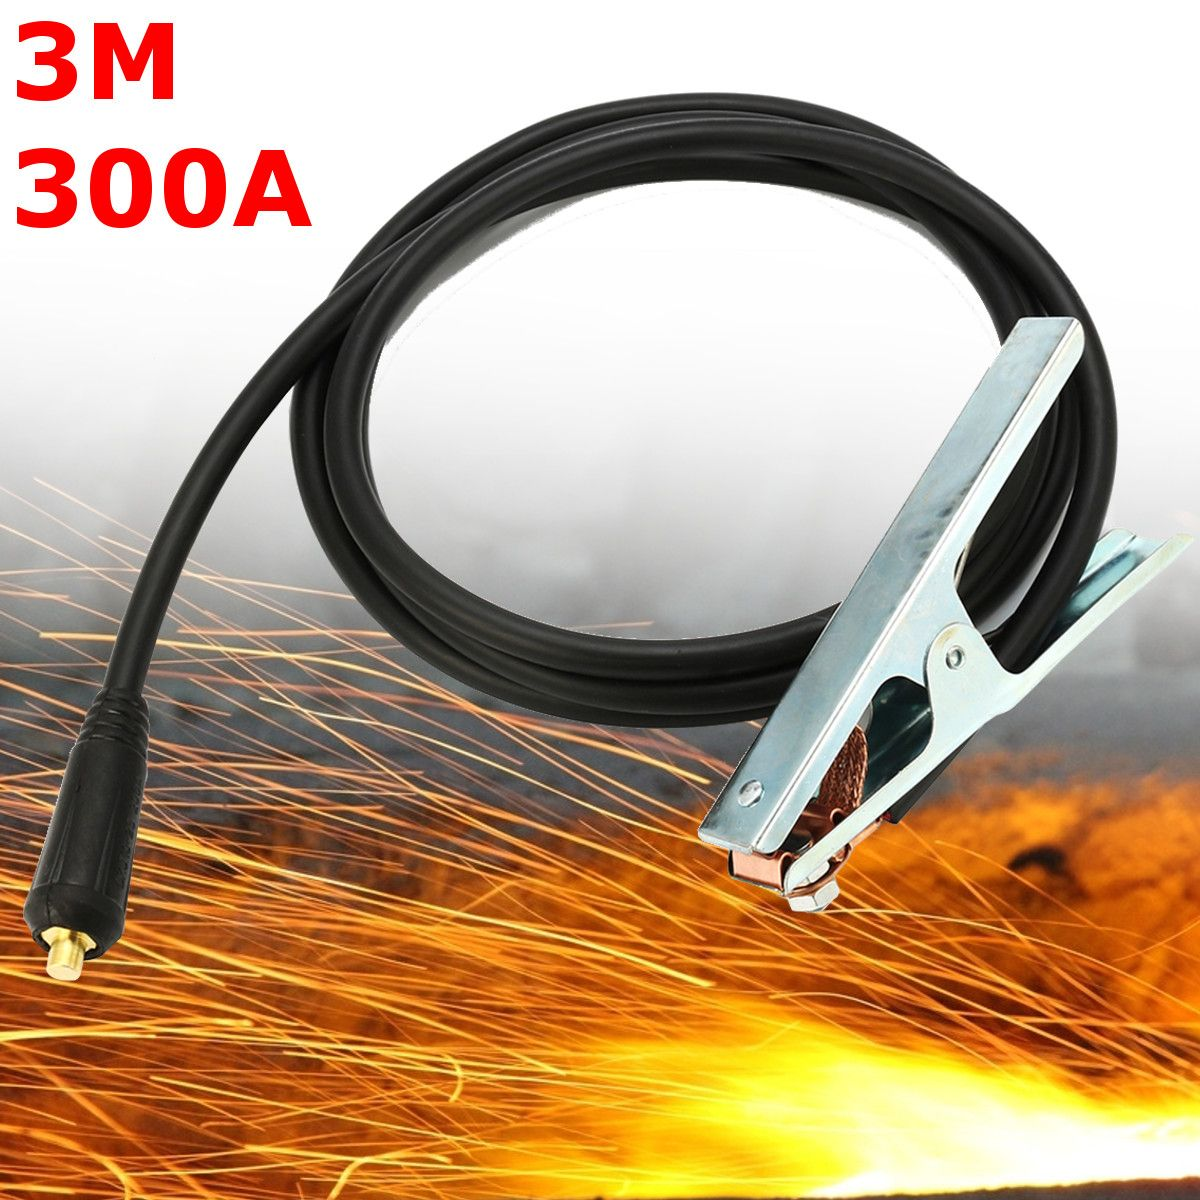 1PC 300A Stick Welding Electrode Holder Cable 1.5M Cable Connector for ARC Inverter Welder